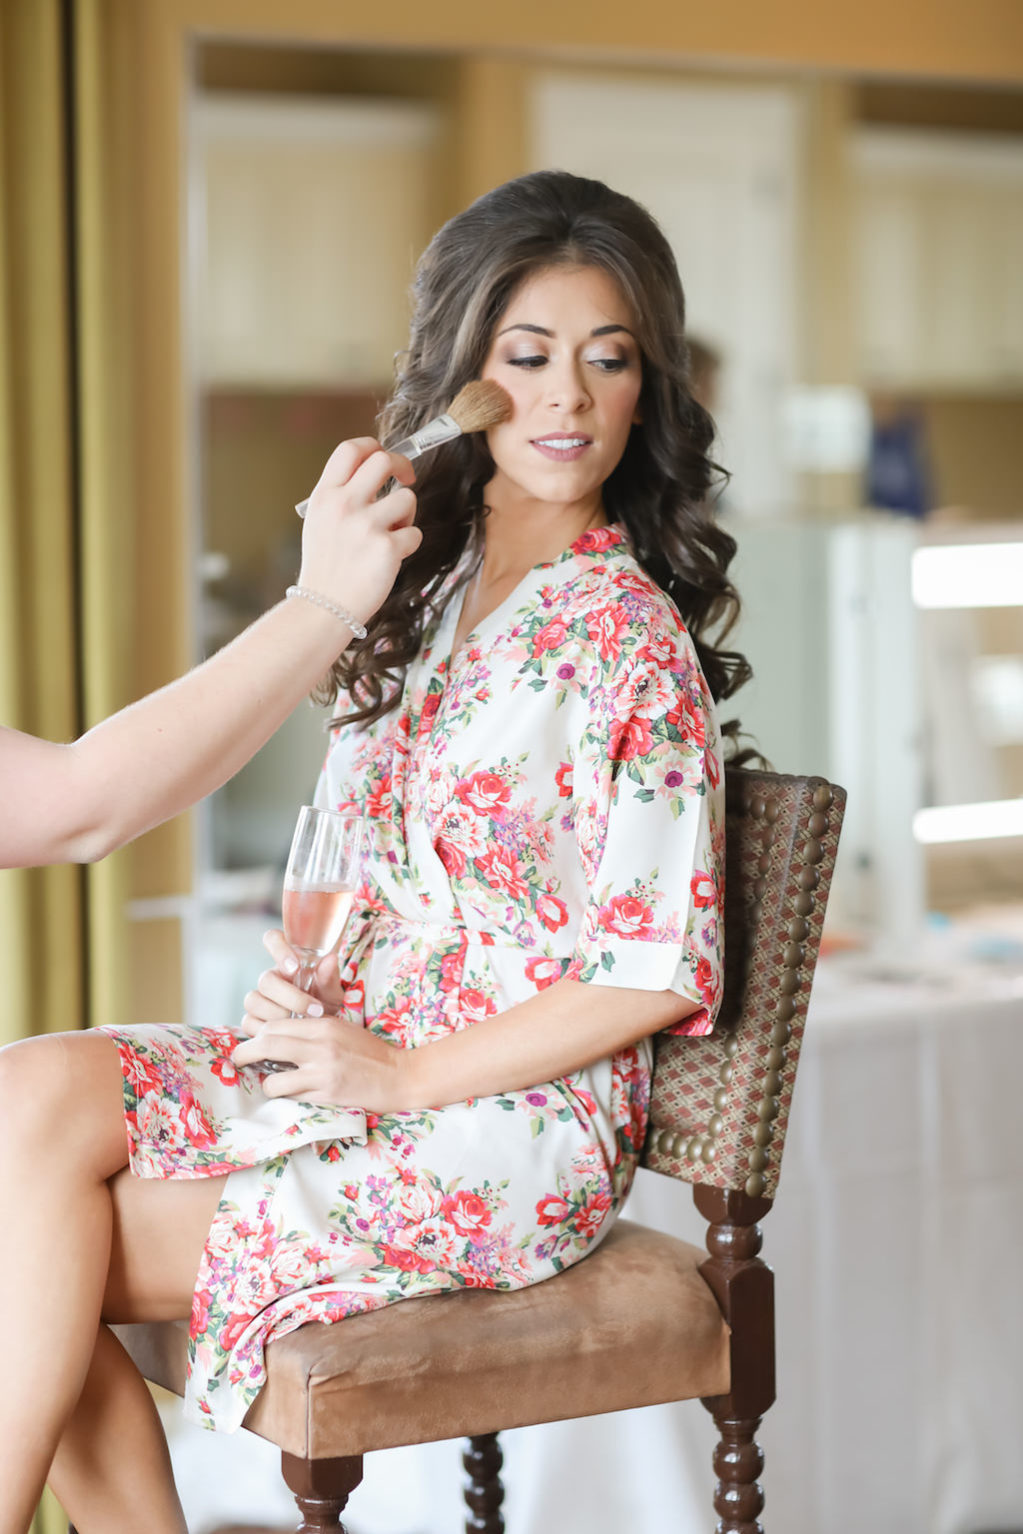 Bride Getting Ready Portrait wearing Pink and White Floral Silk Robe | Tampa Bay Wedding Hair and Makeup Michele Renee The Studio | Photographer Lifelong Studios Photography